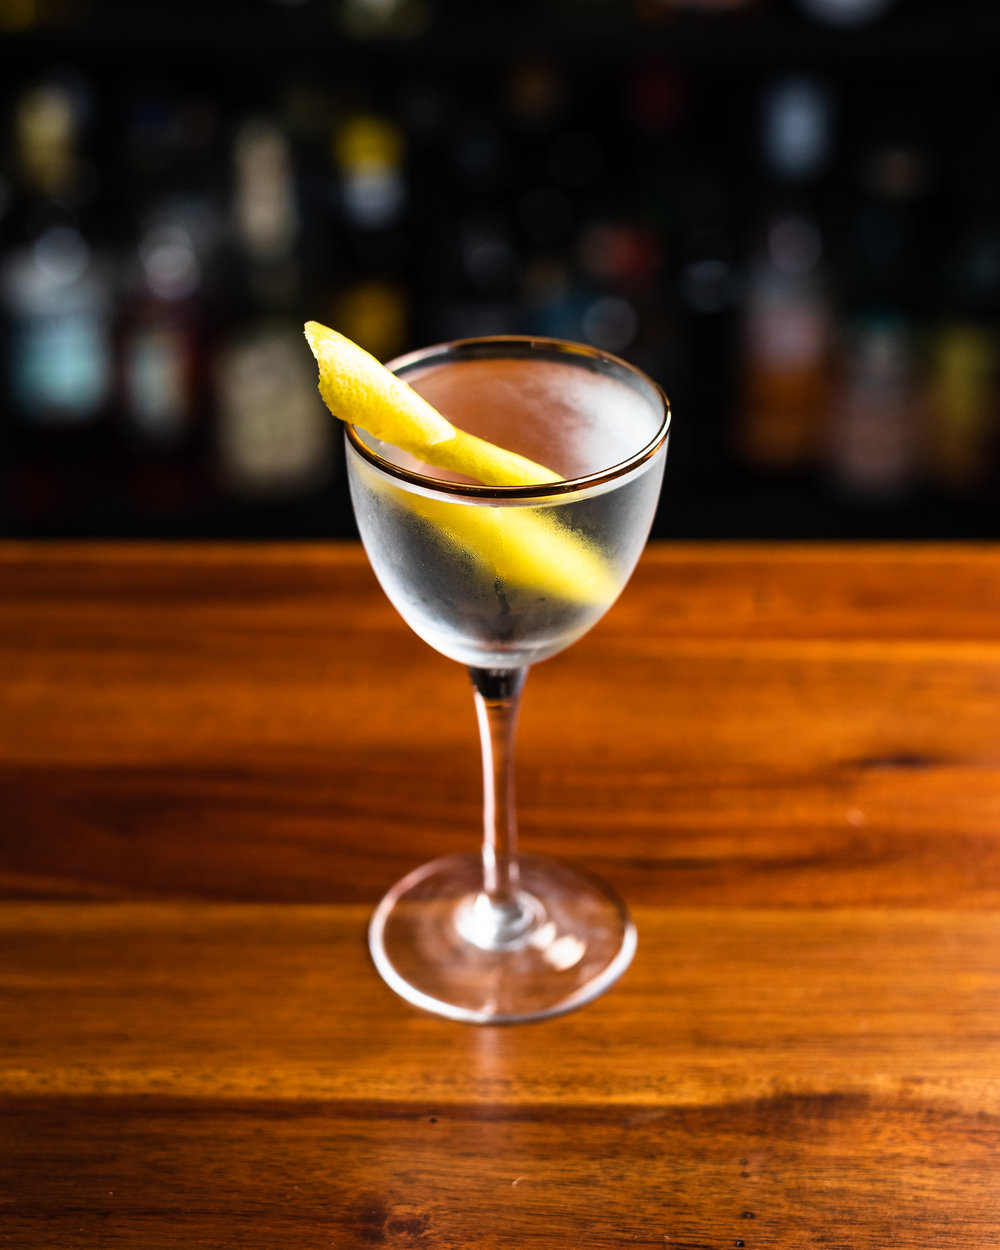 The Sailor - Sophisticated, pleasantly bitter with a touch of sweet